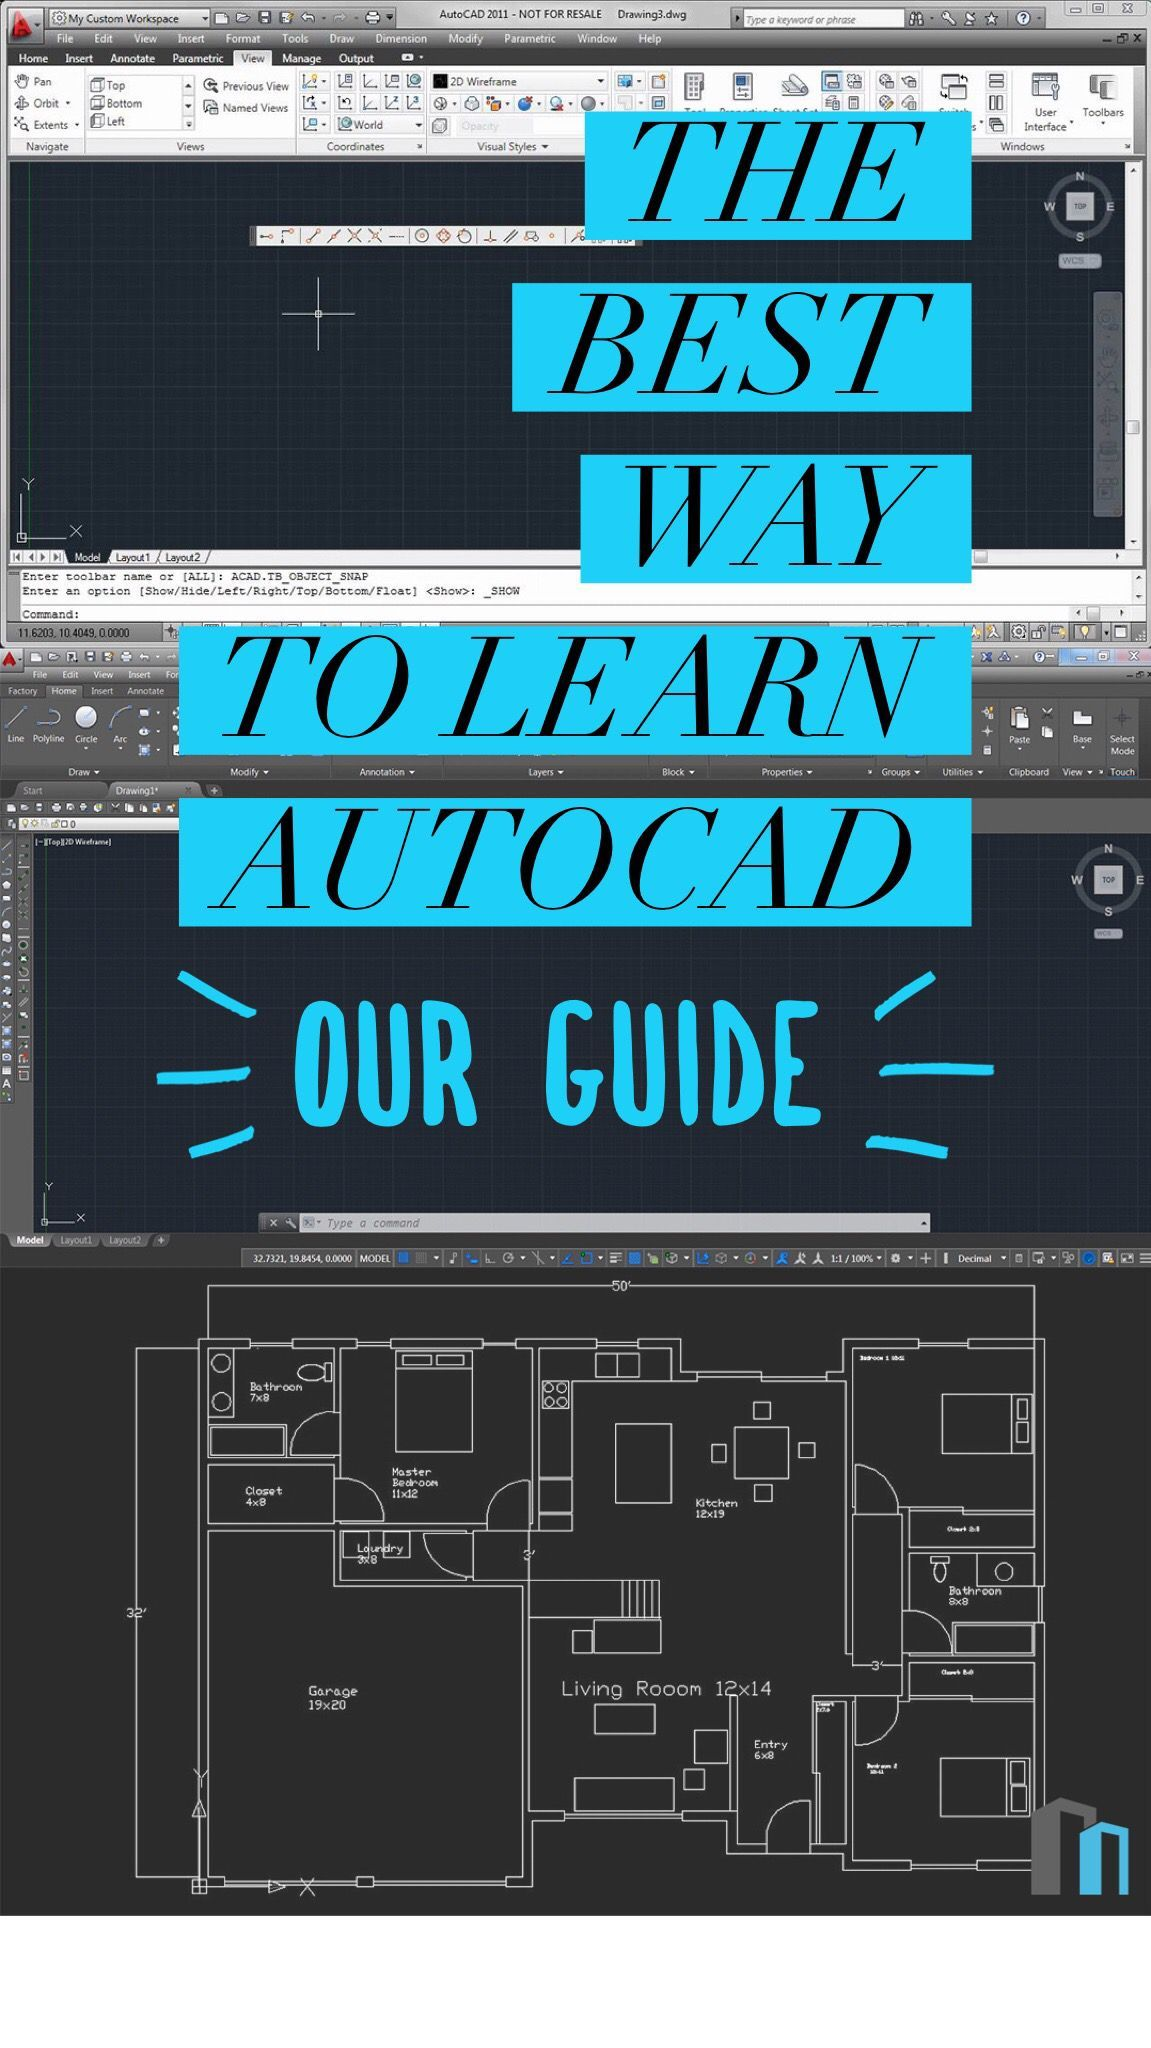 Learning Autocad With Free And Premium Video Courses Learn Autocad Autocad Tutorial Autocad Drawing